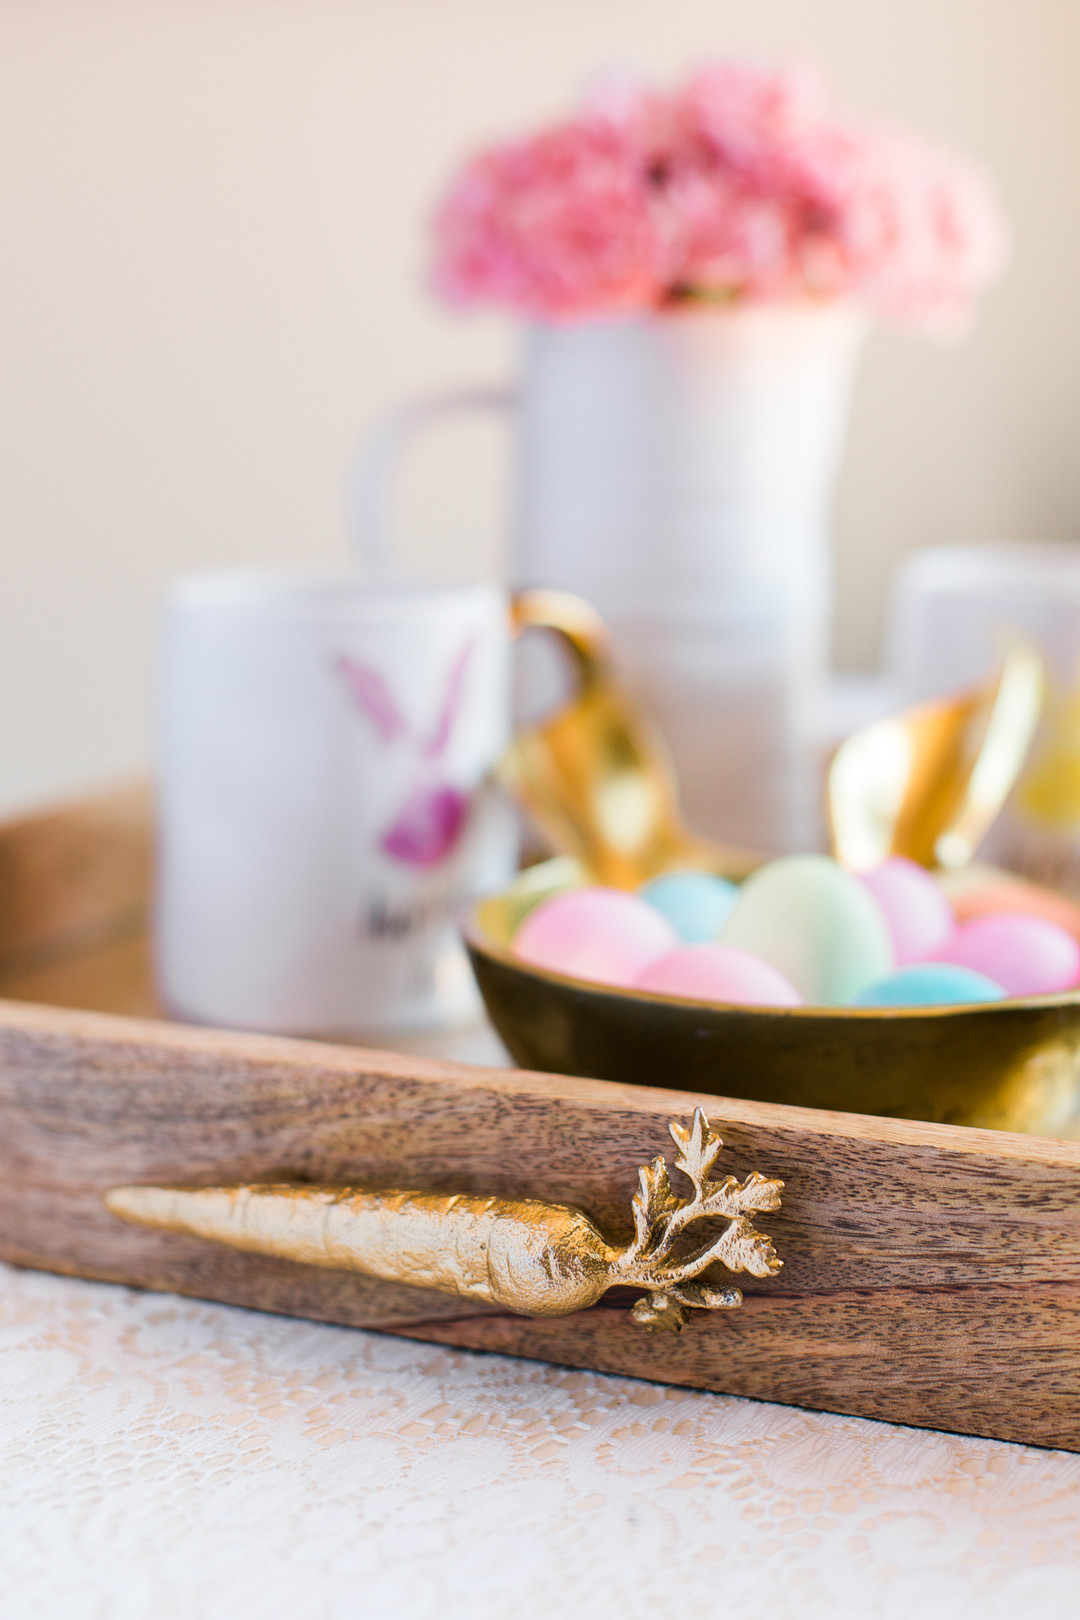 Staal_KristinaStaalPhotography_KristinaStaalPhotographyEasterTablescape201644_big Easy Entertaining: Easter Brunch Inspiration for Two